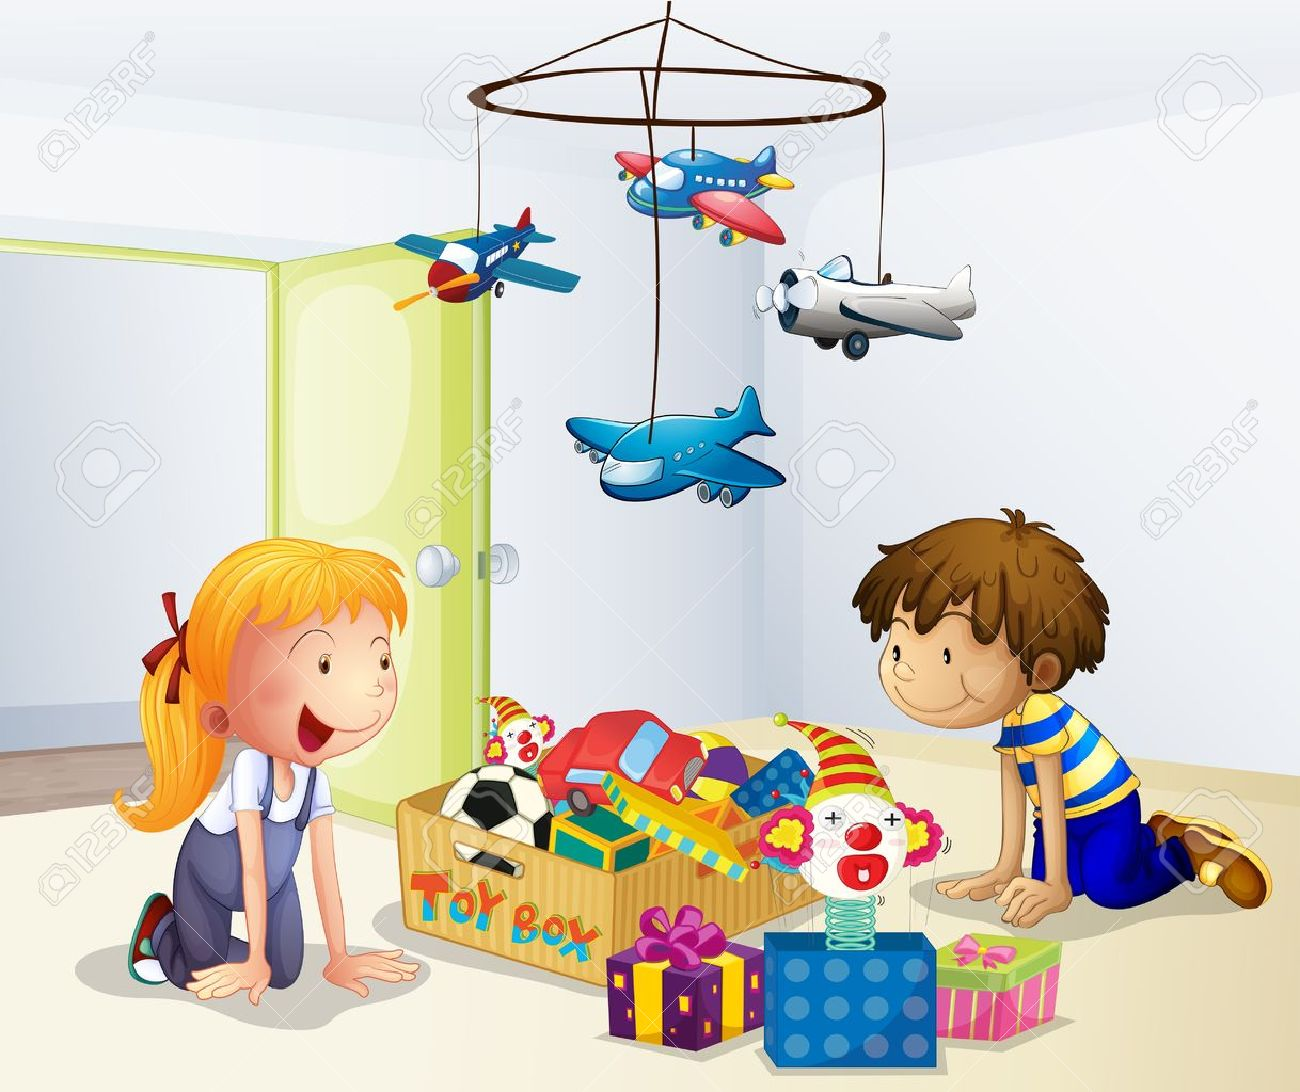 Illustration of a boy and a girl playing inside the house Stock Vector - 18266034